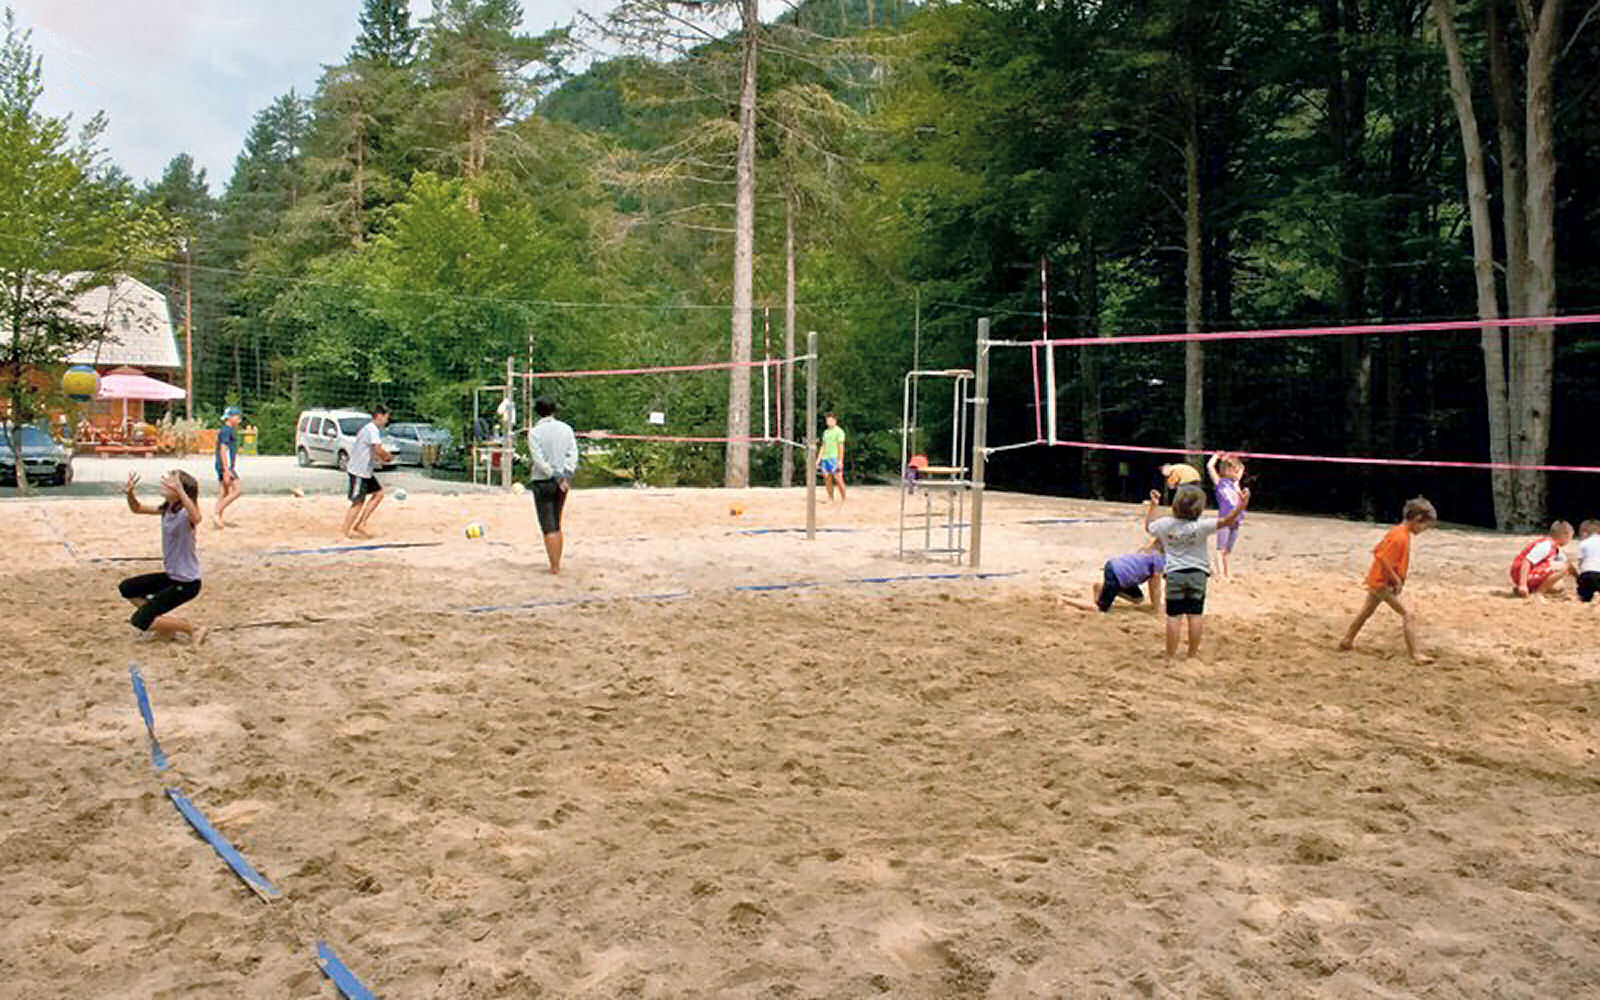 beach-volley-courts-recreation-park